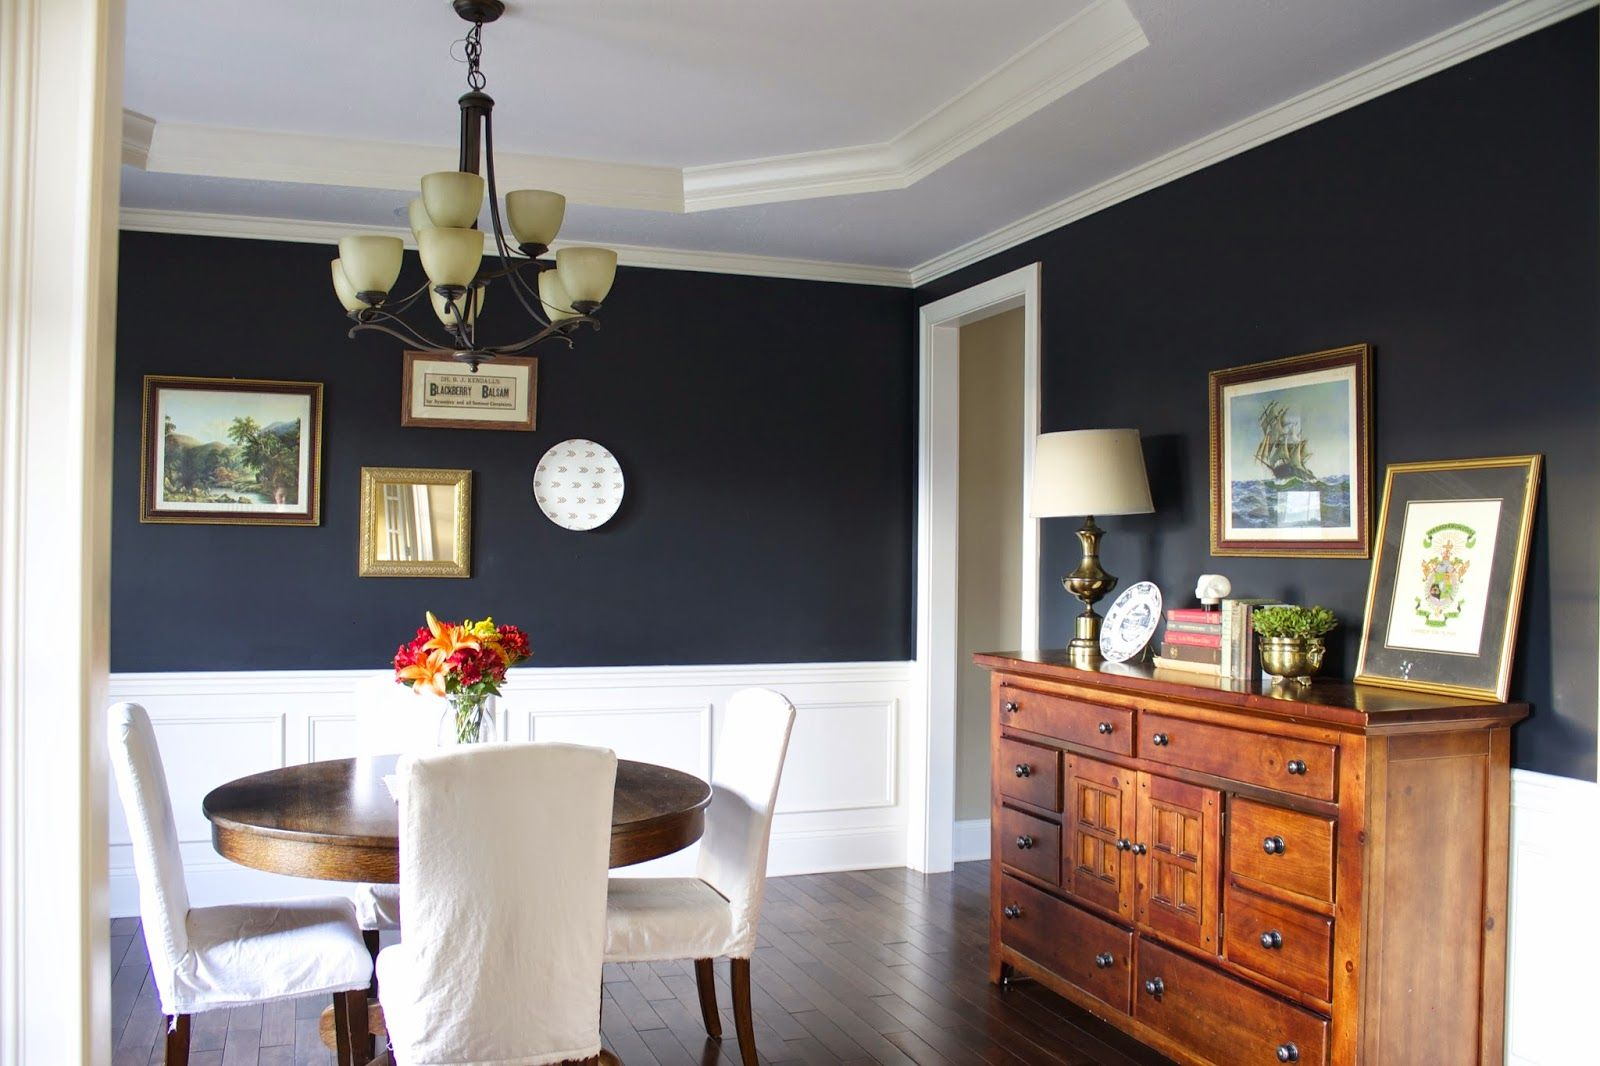 Color Ideas For Dining Room Walls Cool Sherwin Williams Inkwell Navy Dining Room Paint Colorsite Full Decorating Design